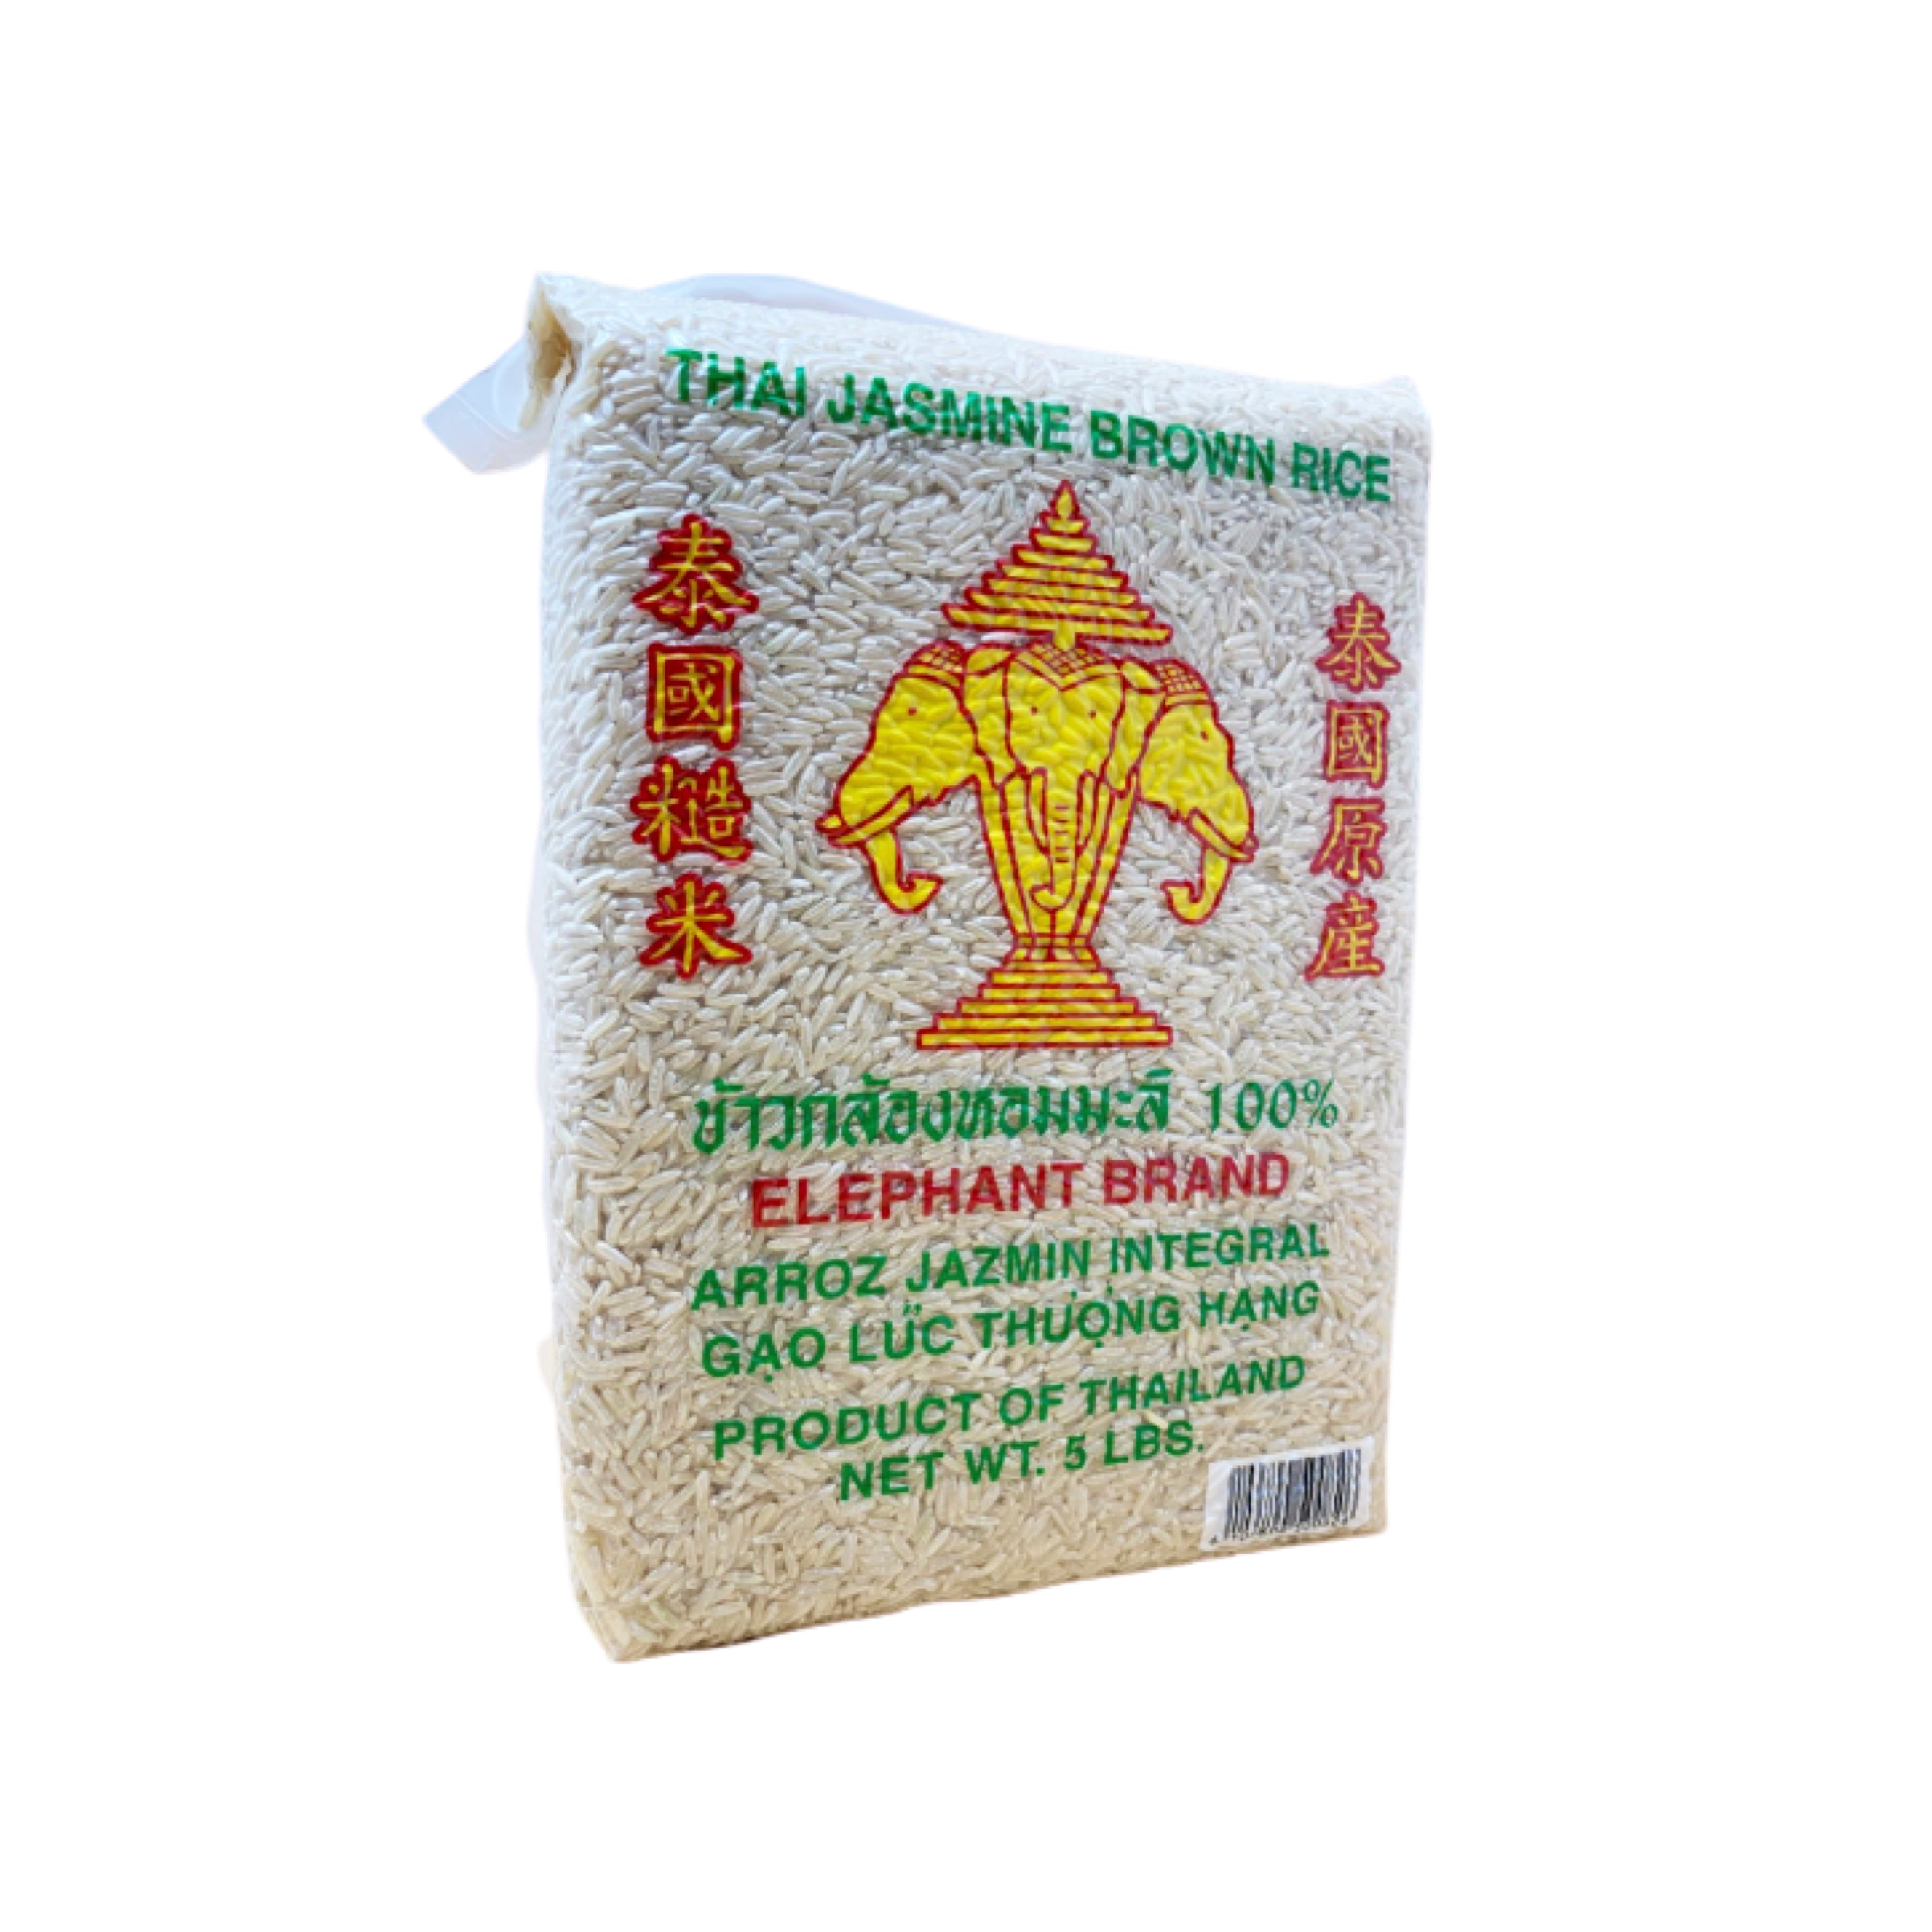 Elephant Brand Thai Jasmine Brown Rice 5lb